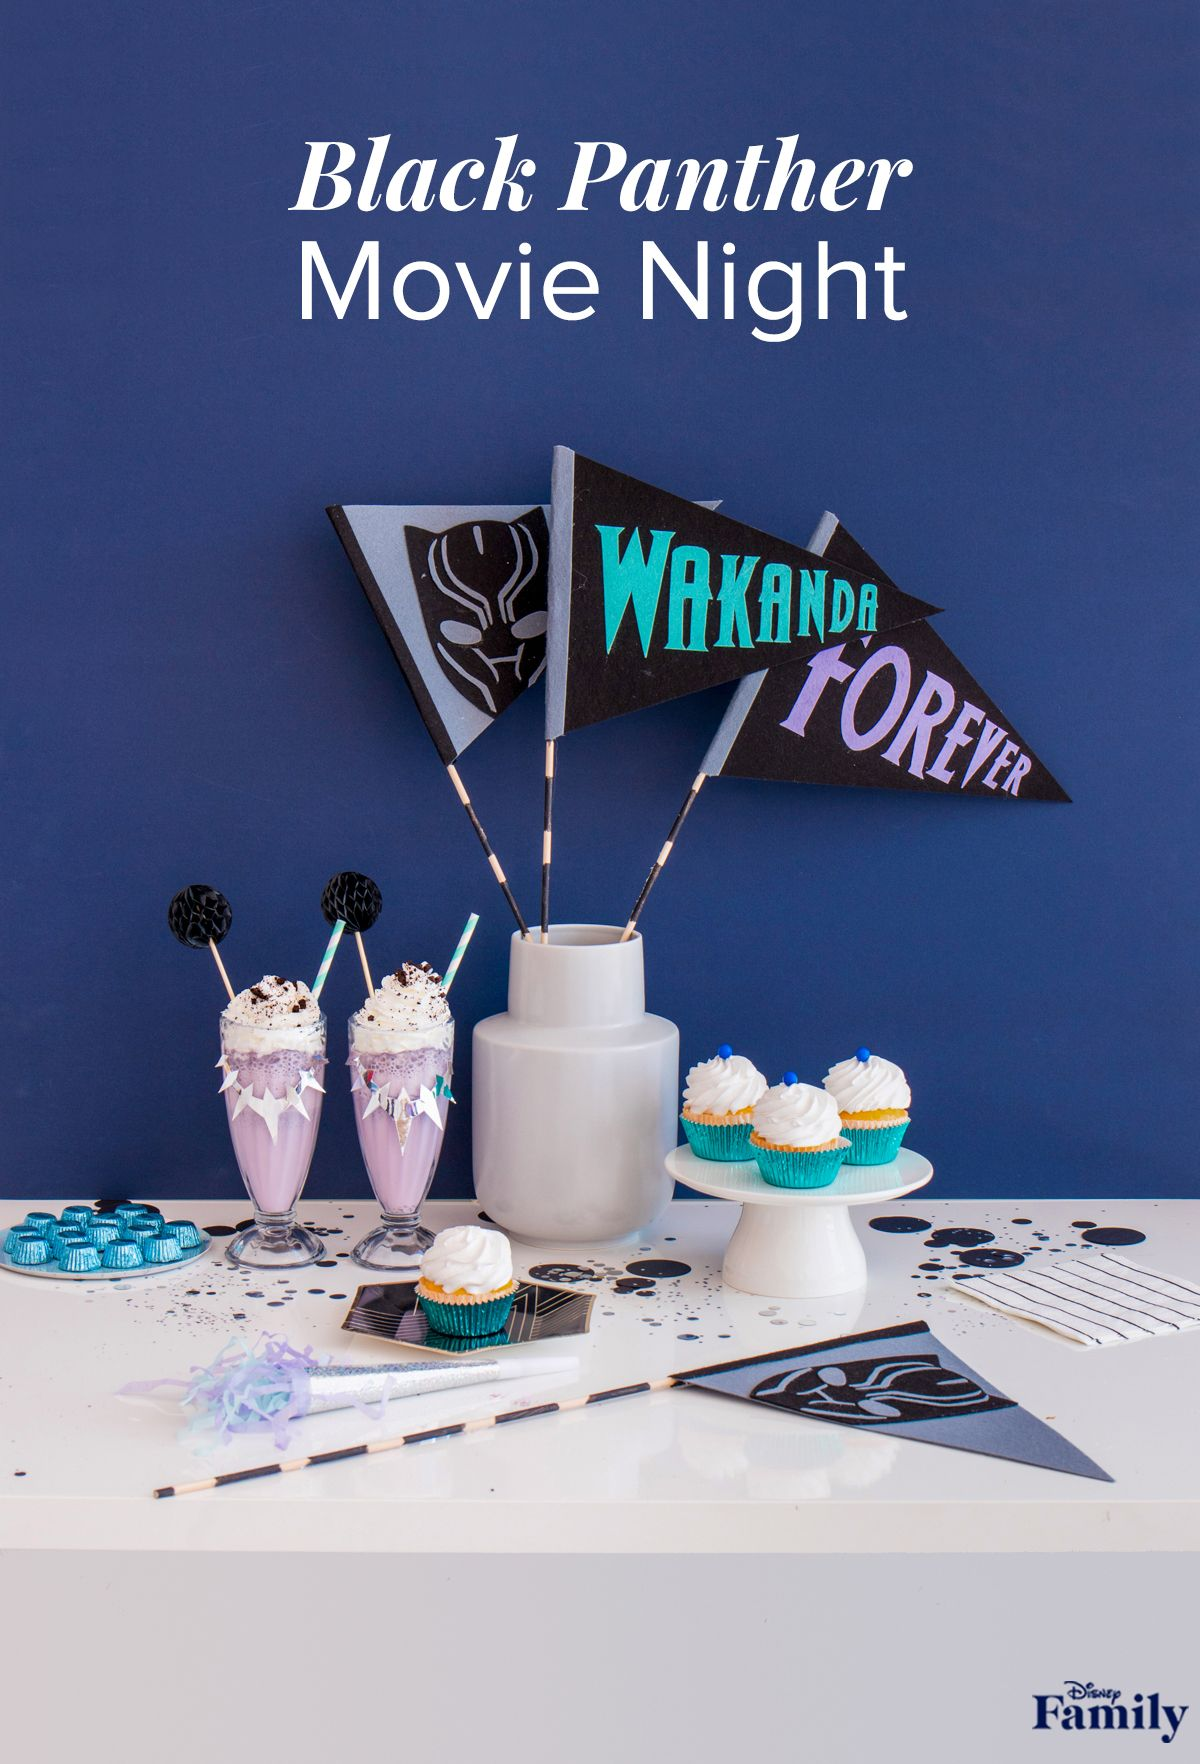 Wakanda Forever! Black Panther is such an iconic film for parents and kids alike. So, we put together a fun movie night, incorporating the vibrant colors sprinkled throughout the film. Creating a themed recipe and craft makes any family viewing party extra special. We recommend some felt pennants and delicious milkshakes to get the party started. All you need to add is popcorn! Click through to see how to throw this DIY Black Panther movie night.